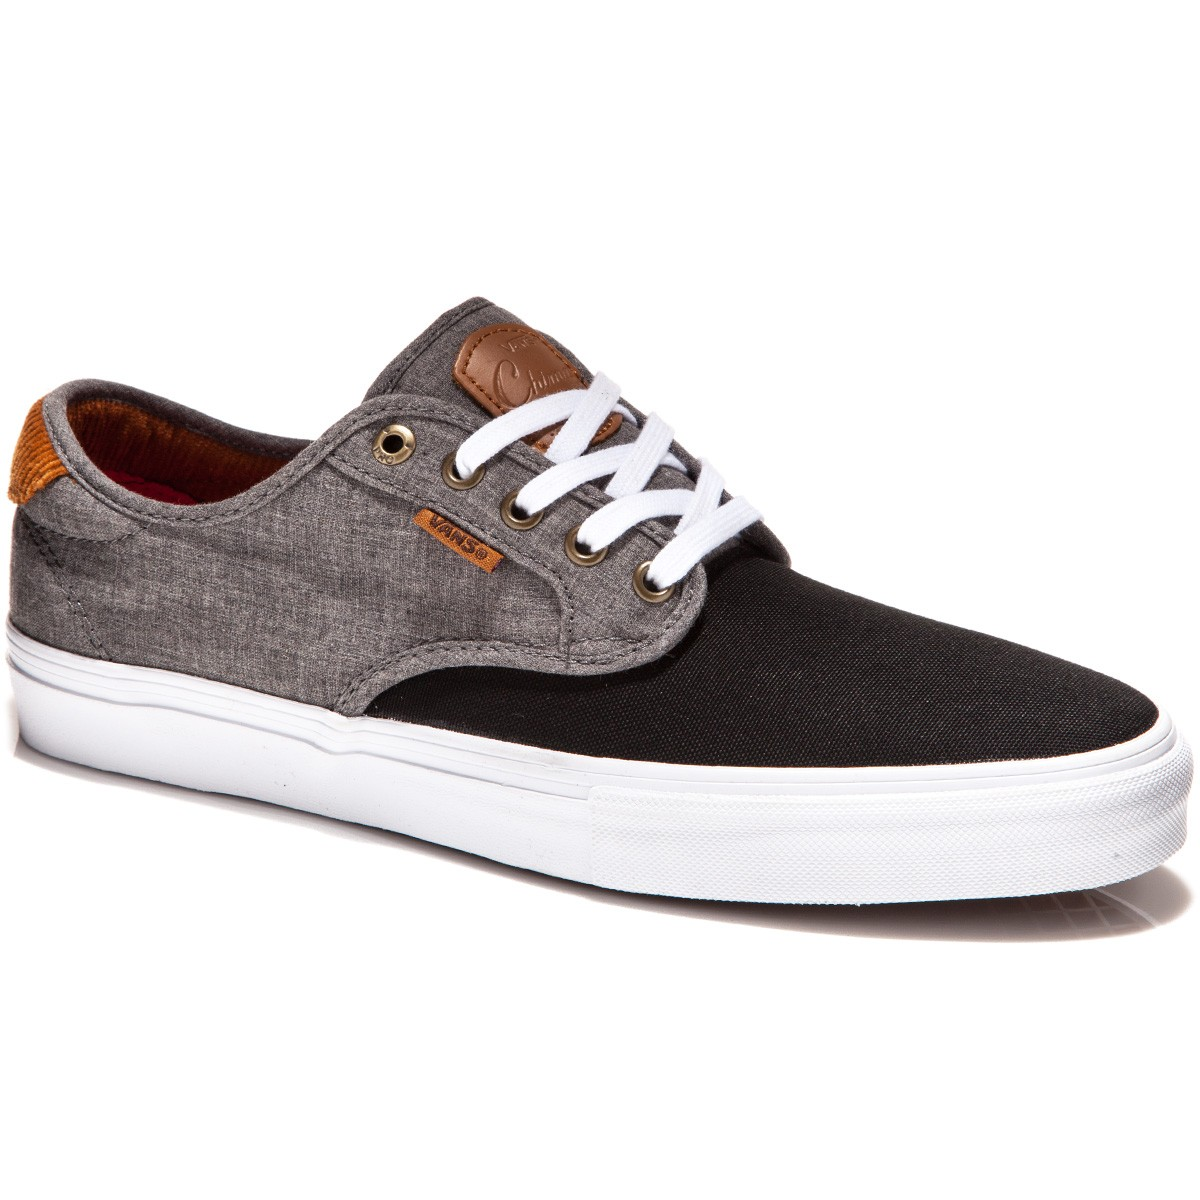 Vans Shoes Youth Size Chart